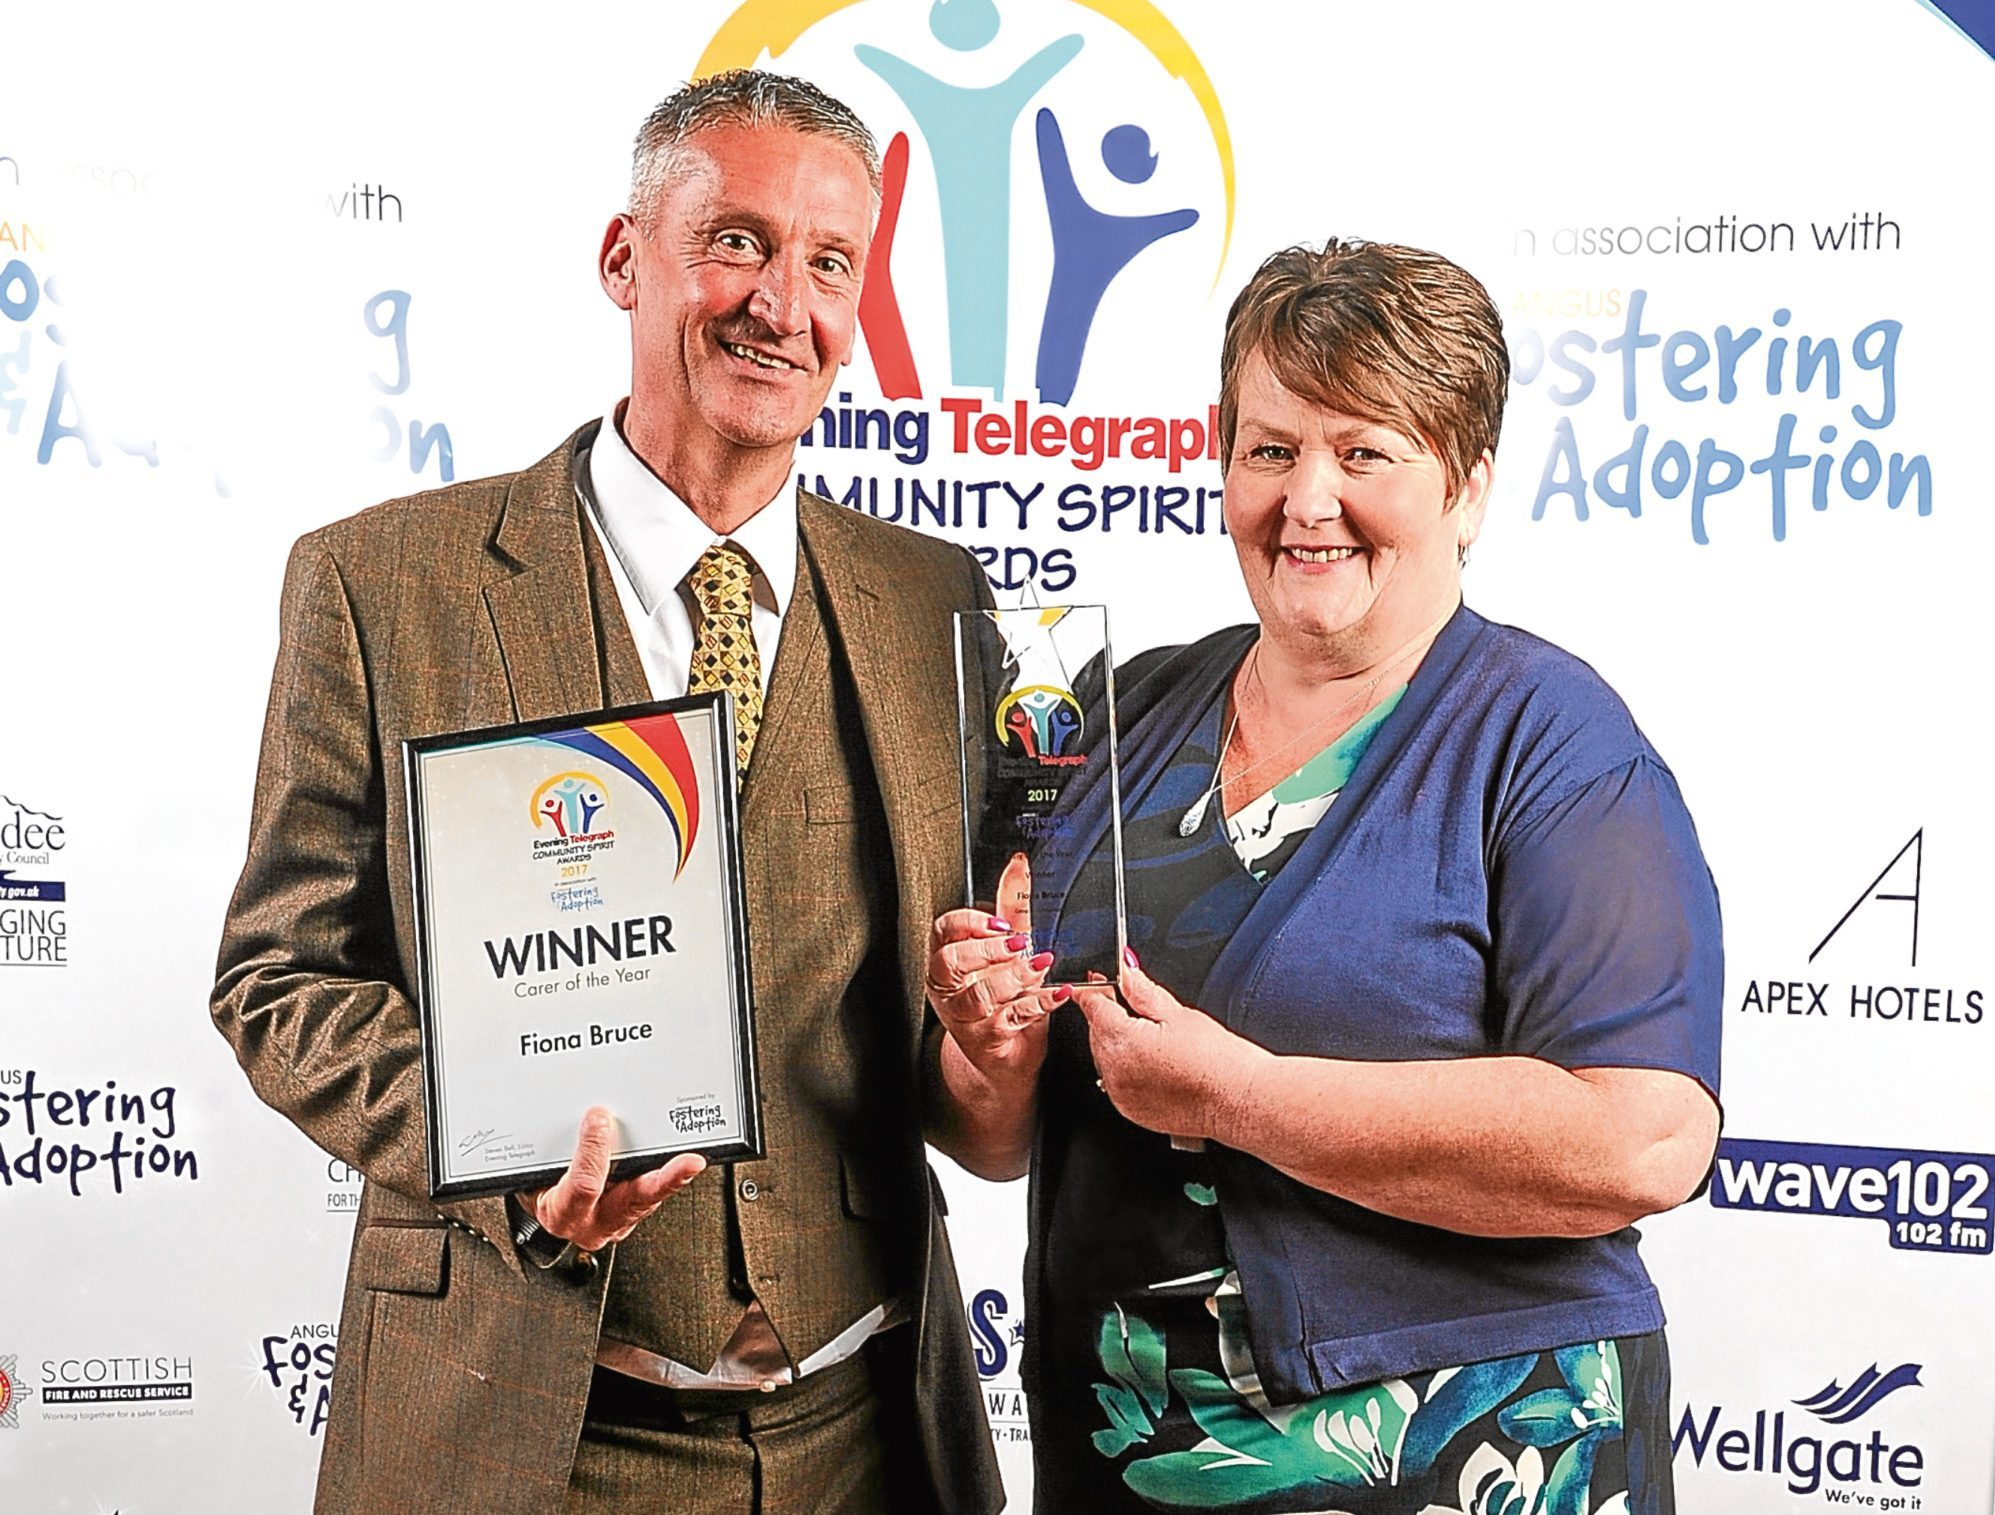 Carer of the Year Award winner Fiona Bruce with her husband Dave